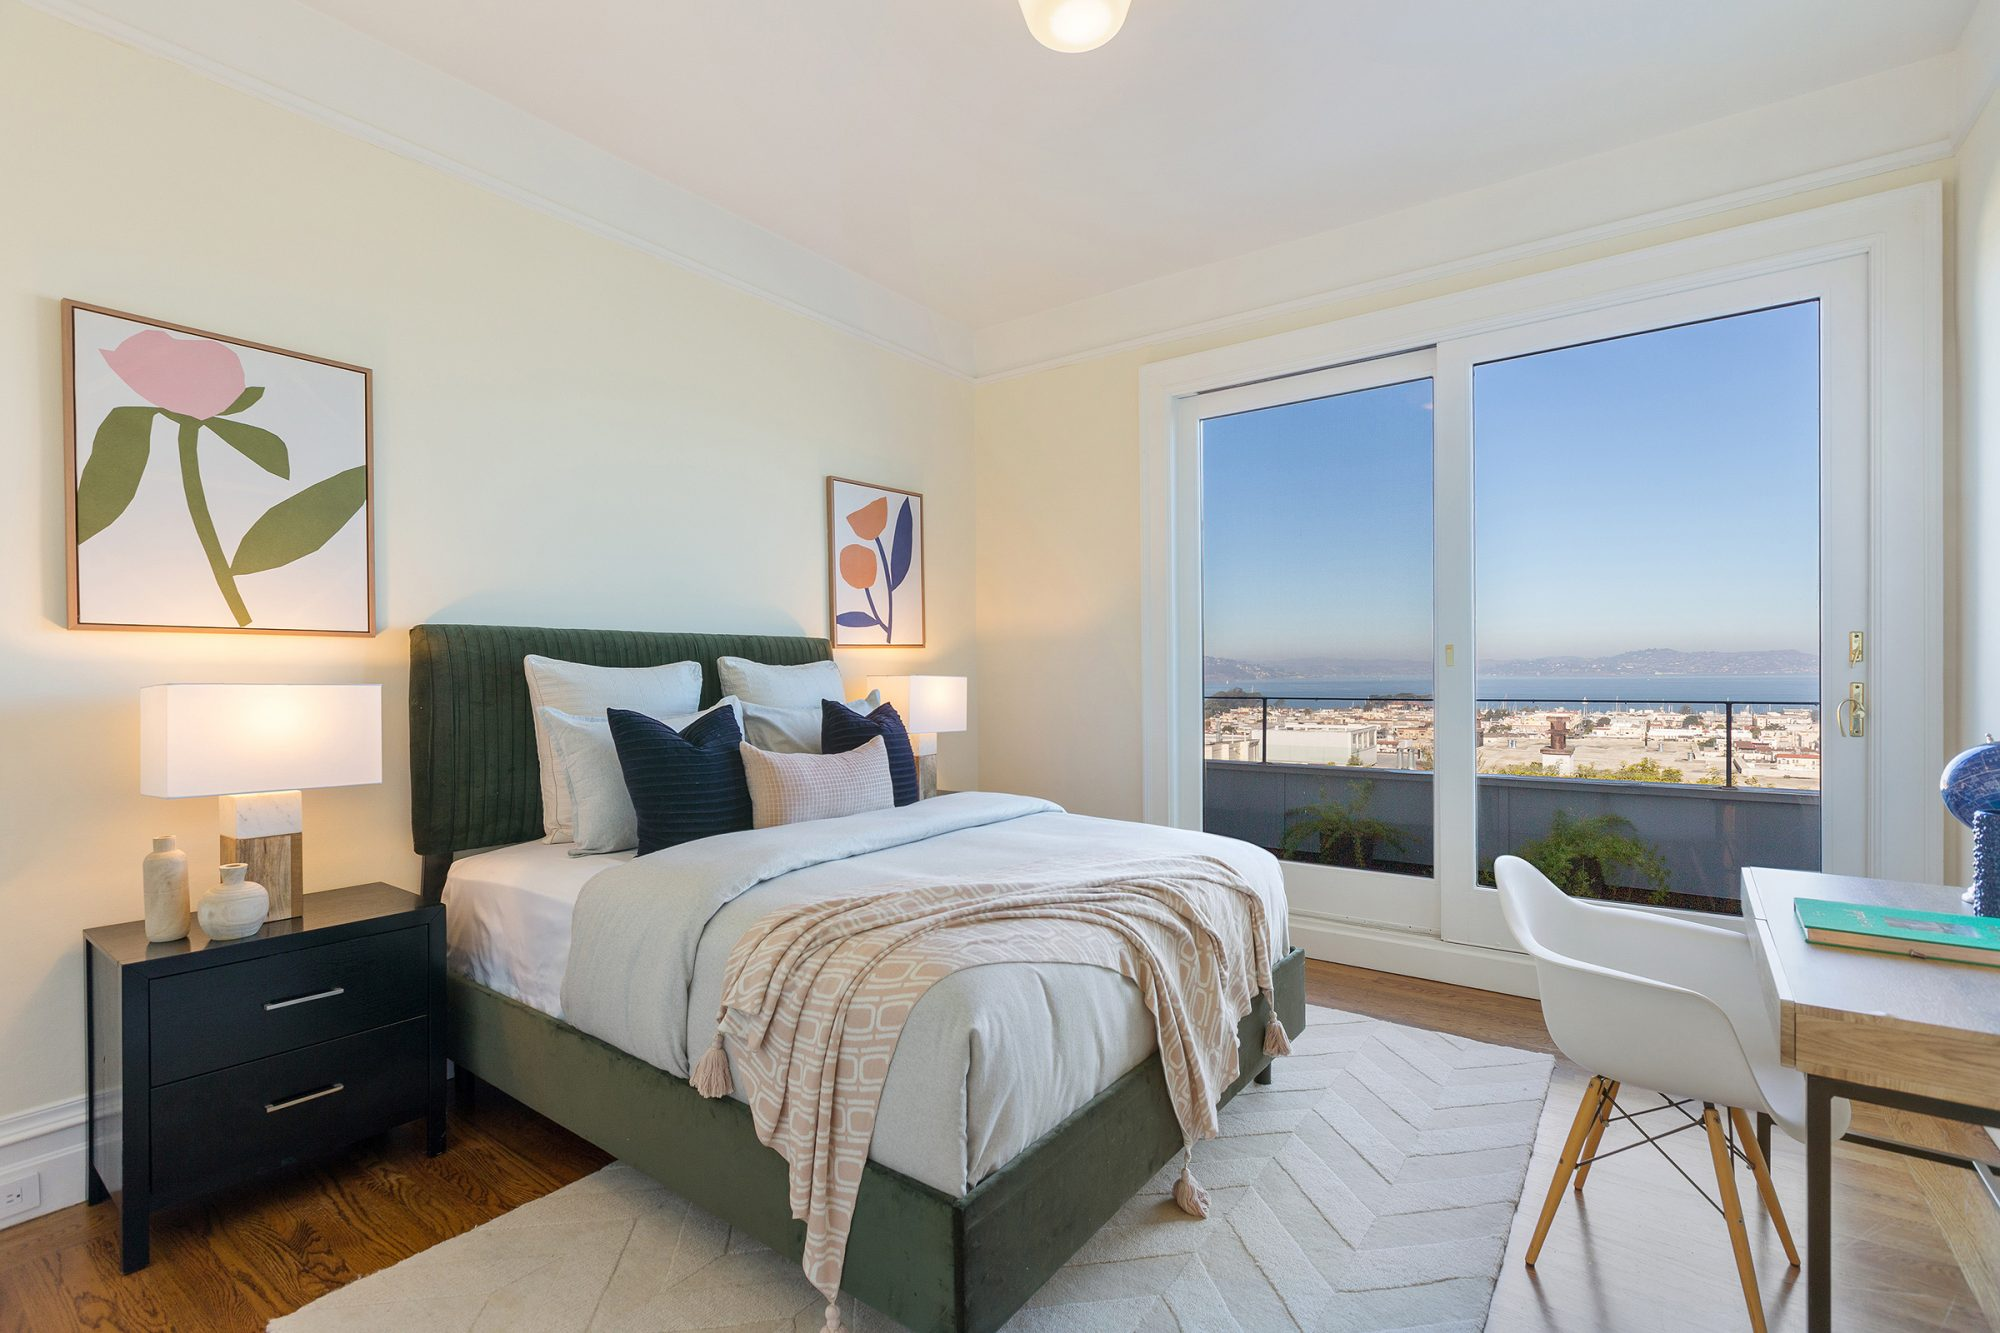 Winona Ryder San Francisco Home for Sale